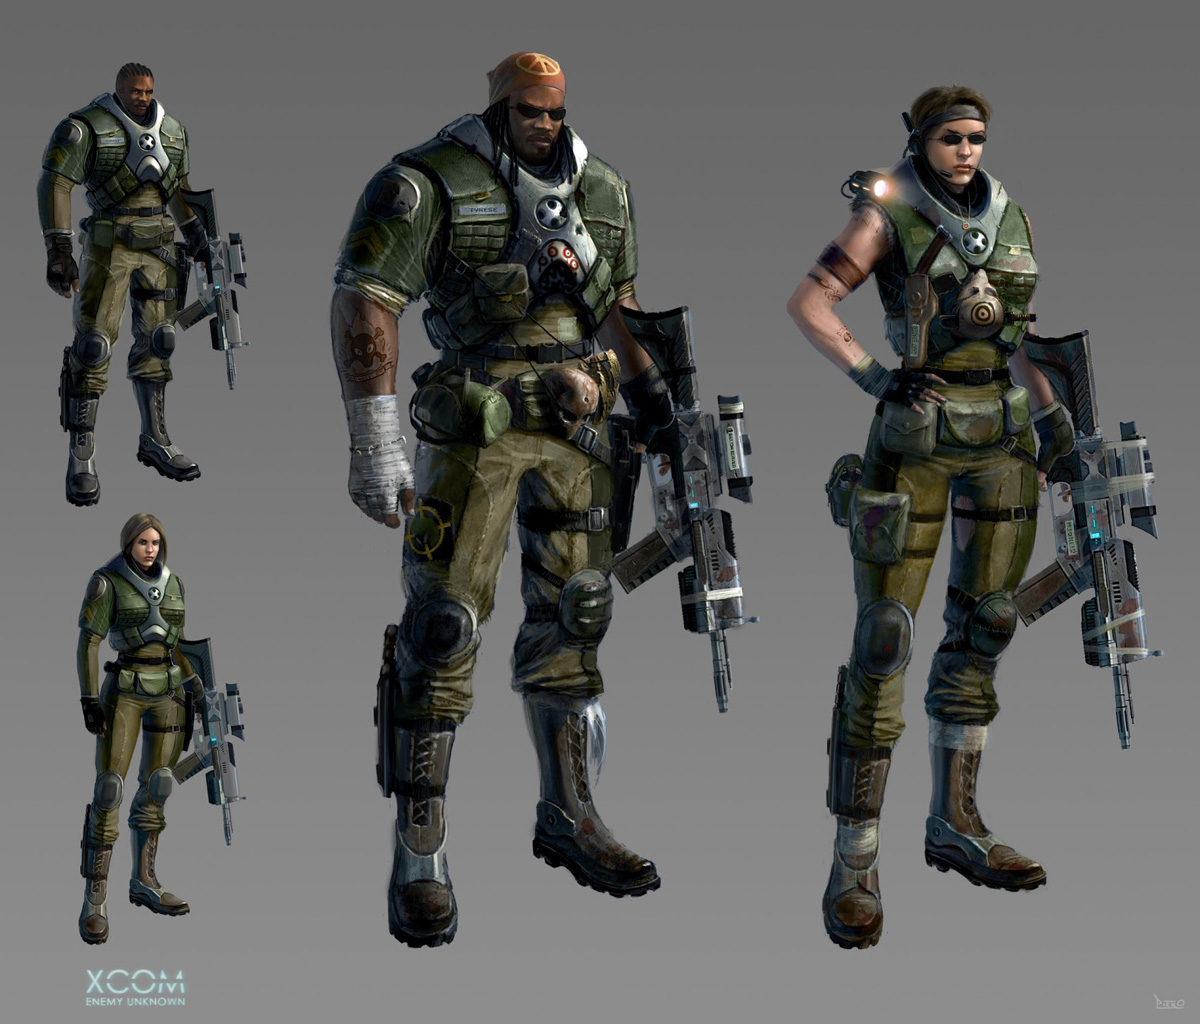 Concept art of an ethereal xcom aliens art